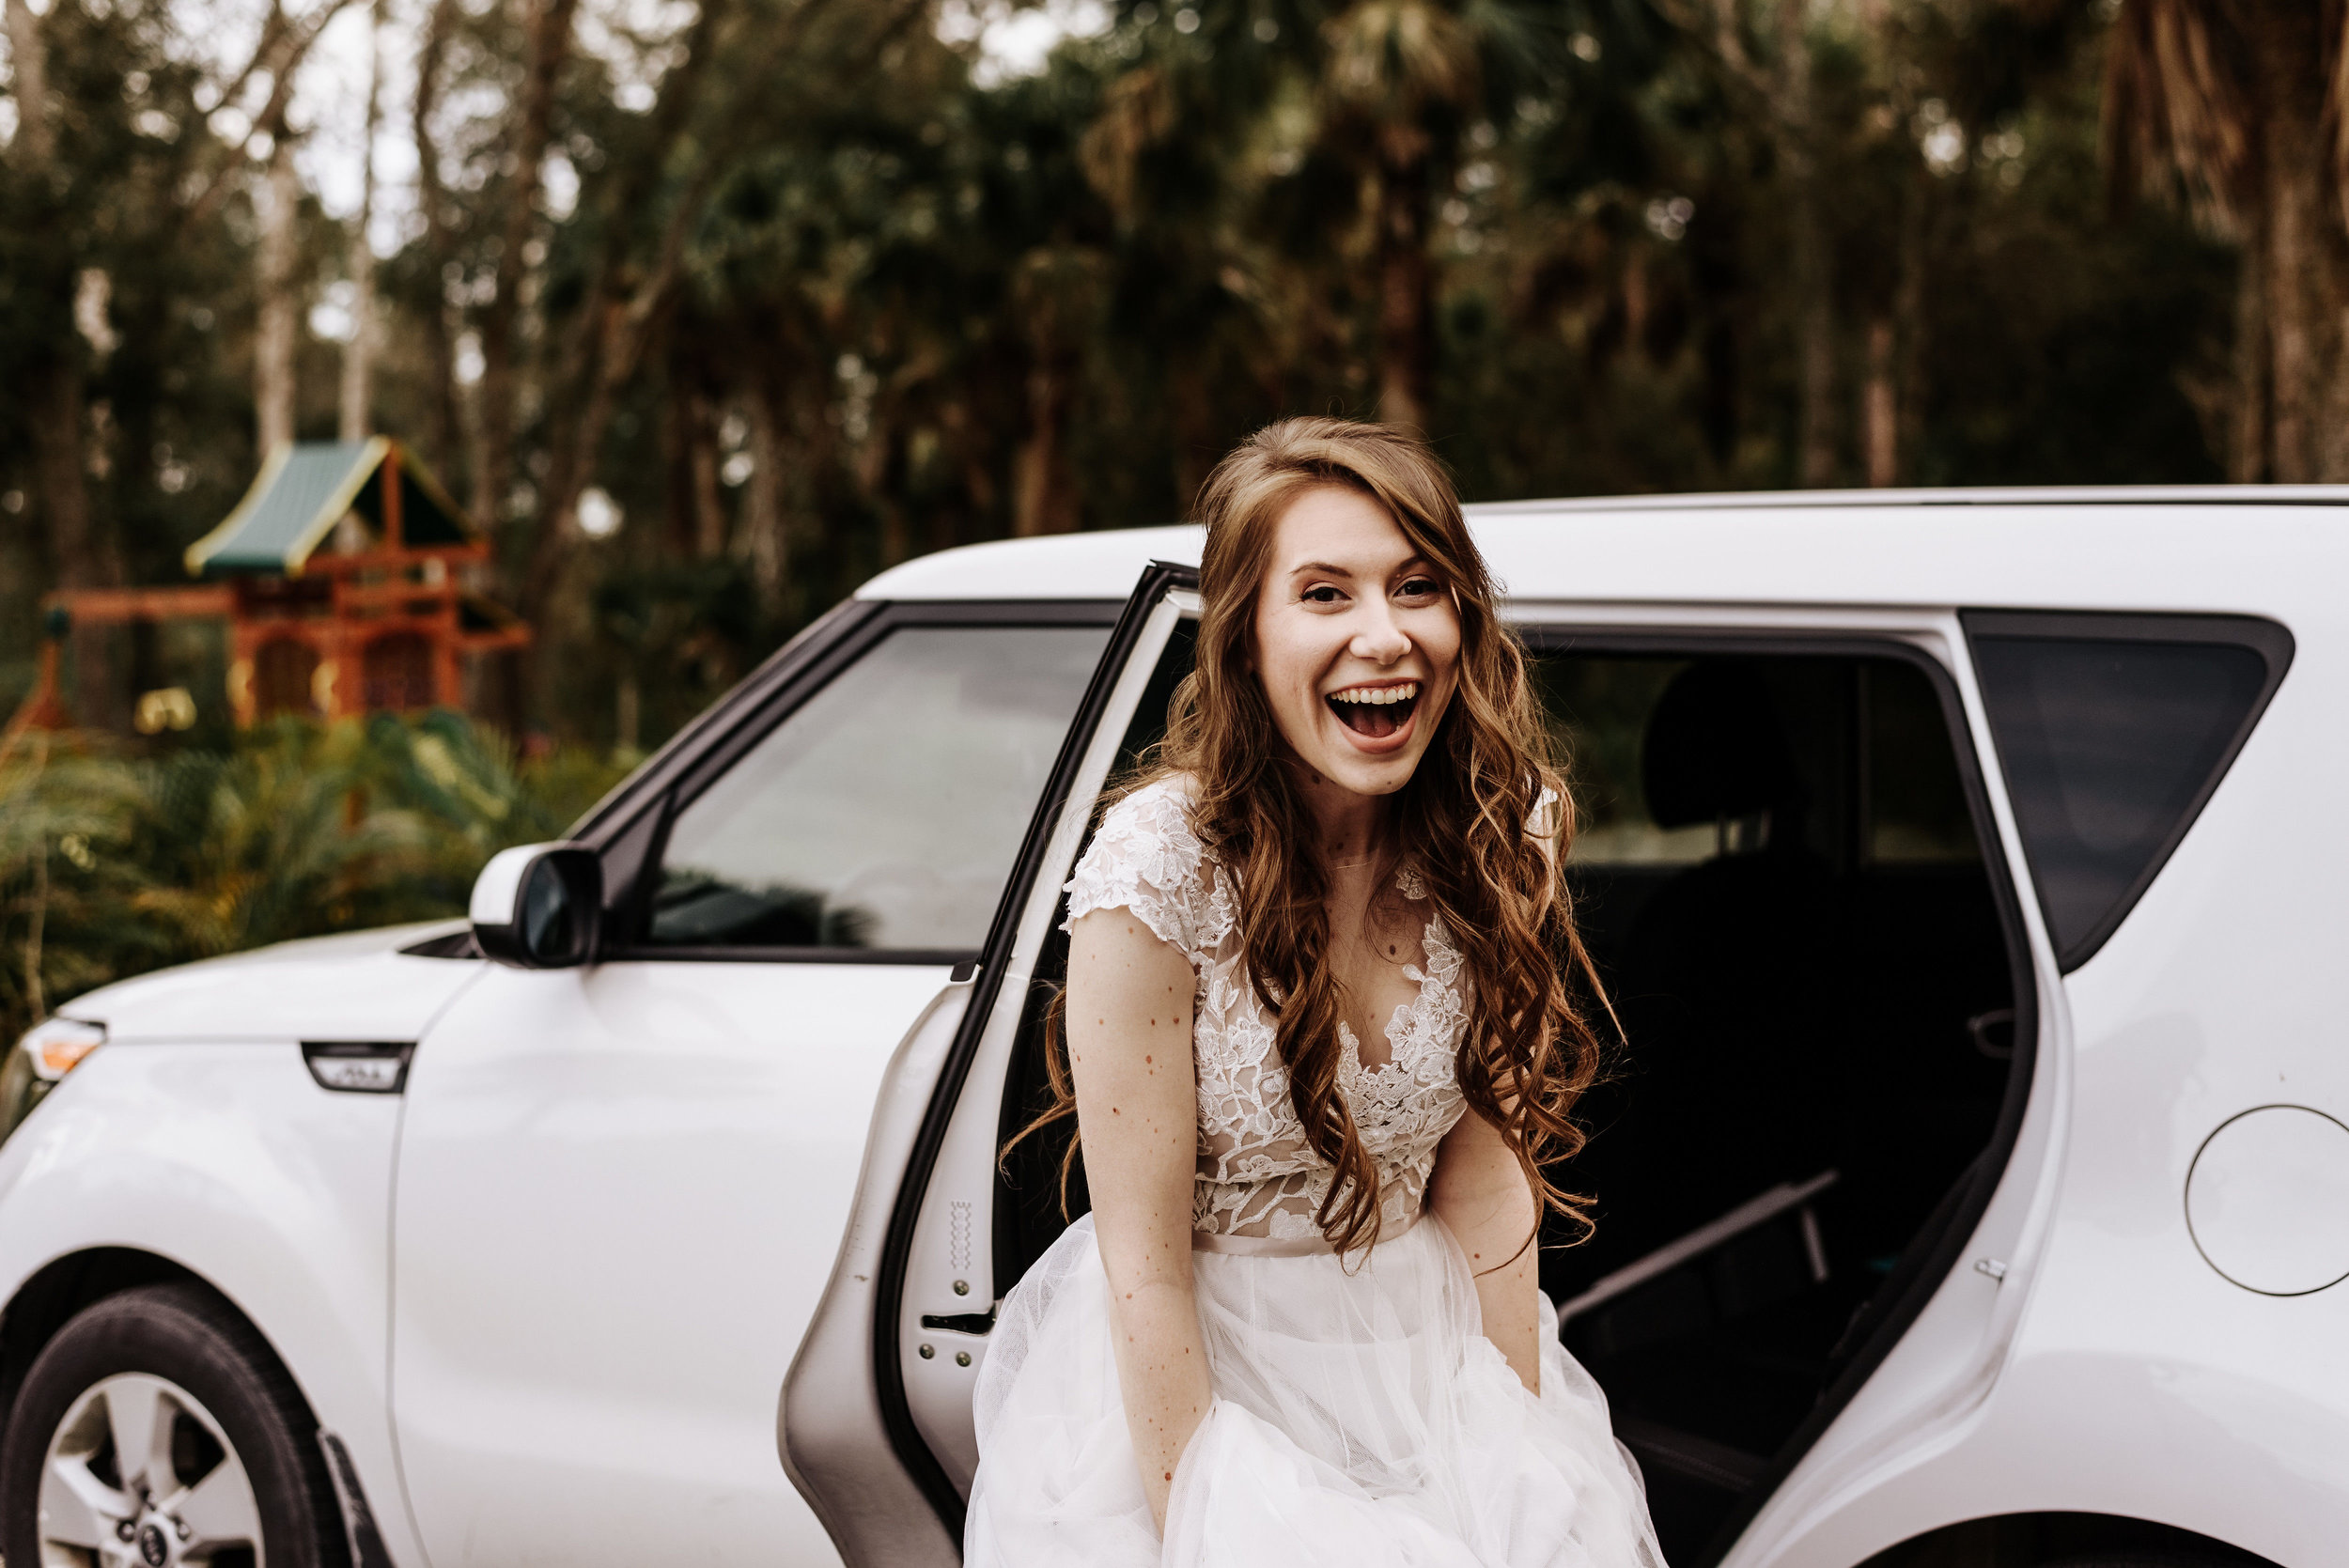 Jess_Micah_Portrait_Session_Wedding_Vero_Beach_Florida_Photography_by_V_0048.jpg